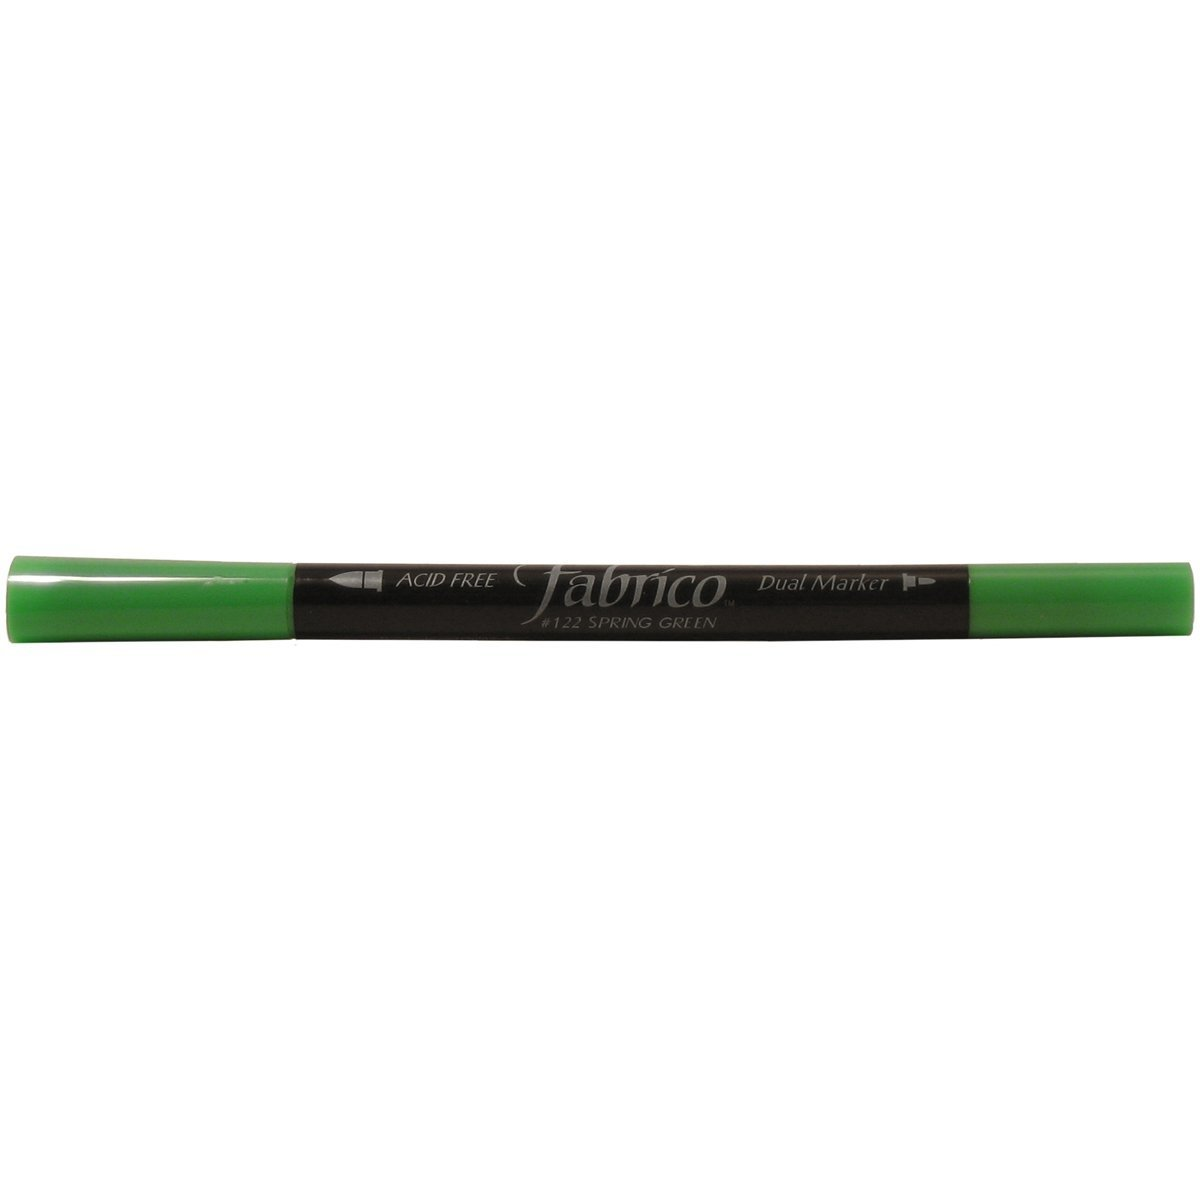 122 Spring Green - Fabrico Dual Tip Marker